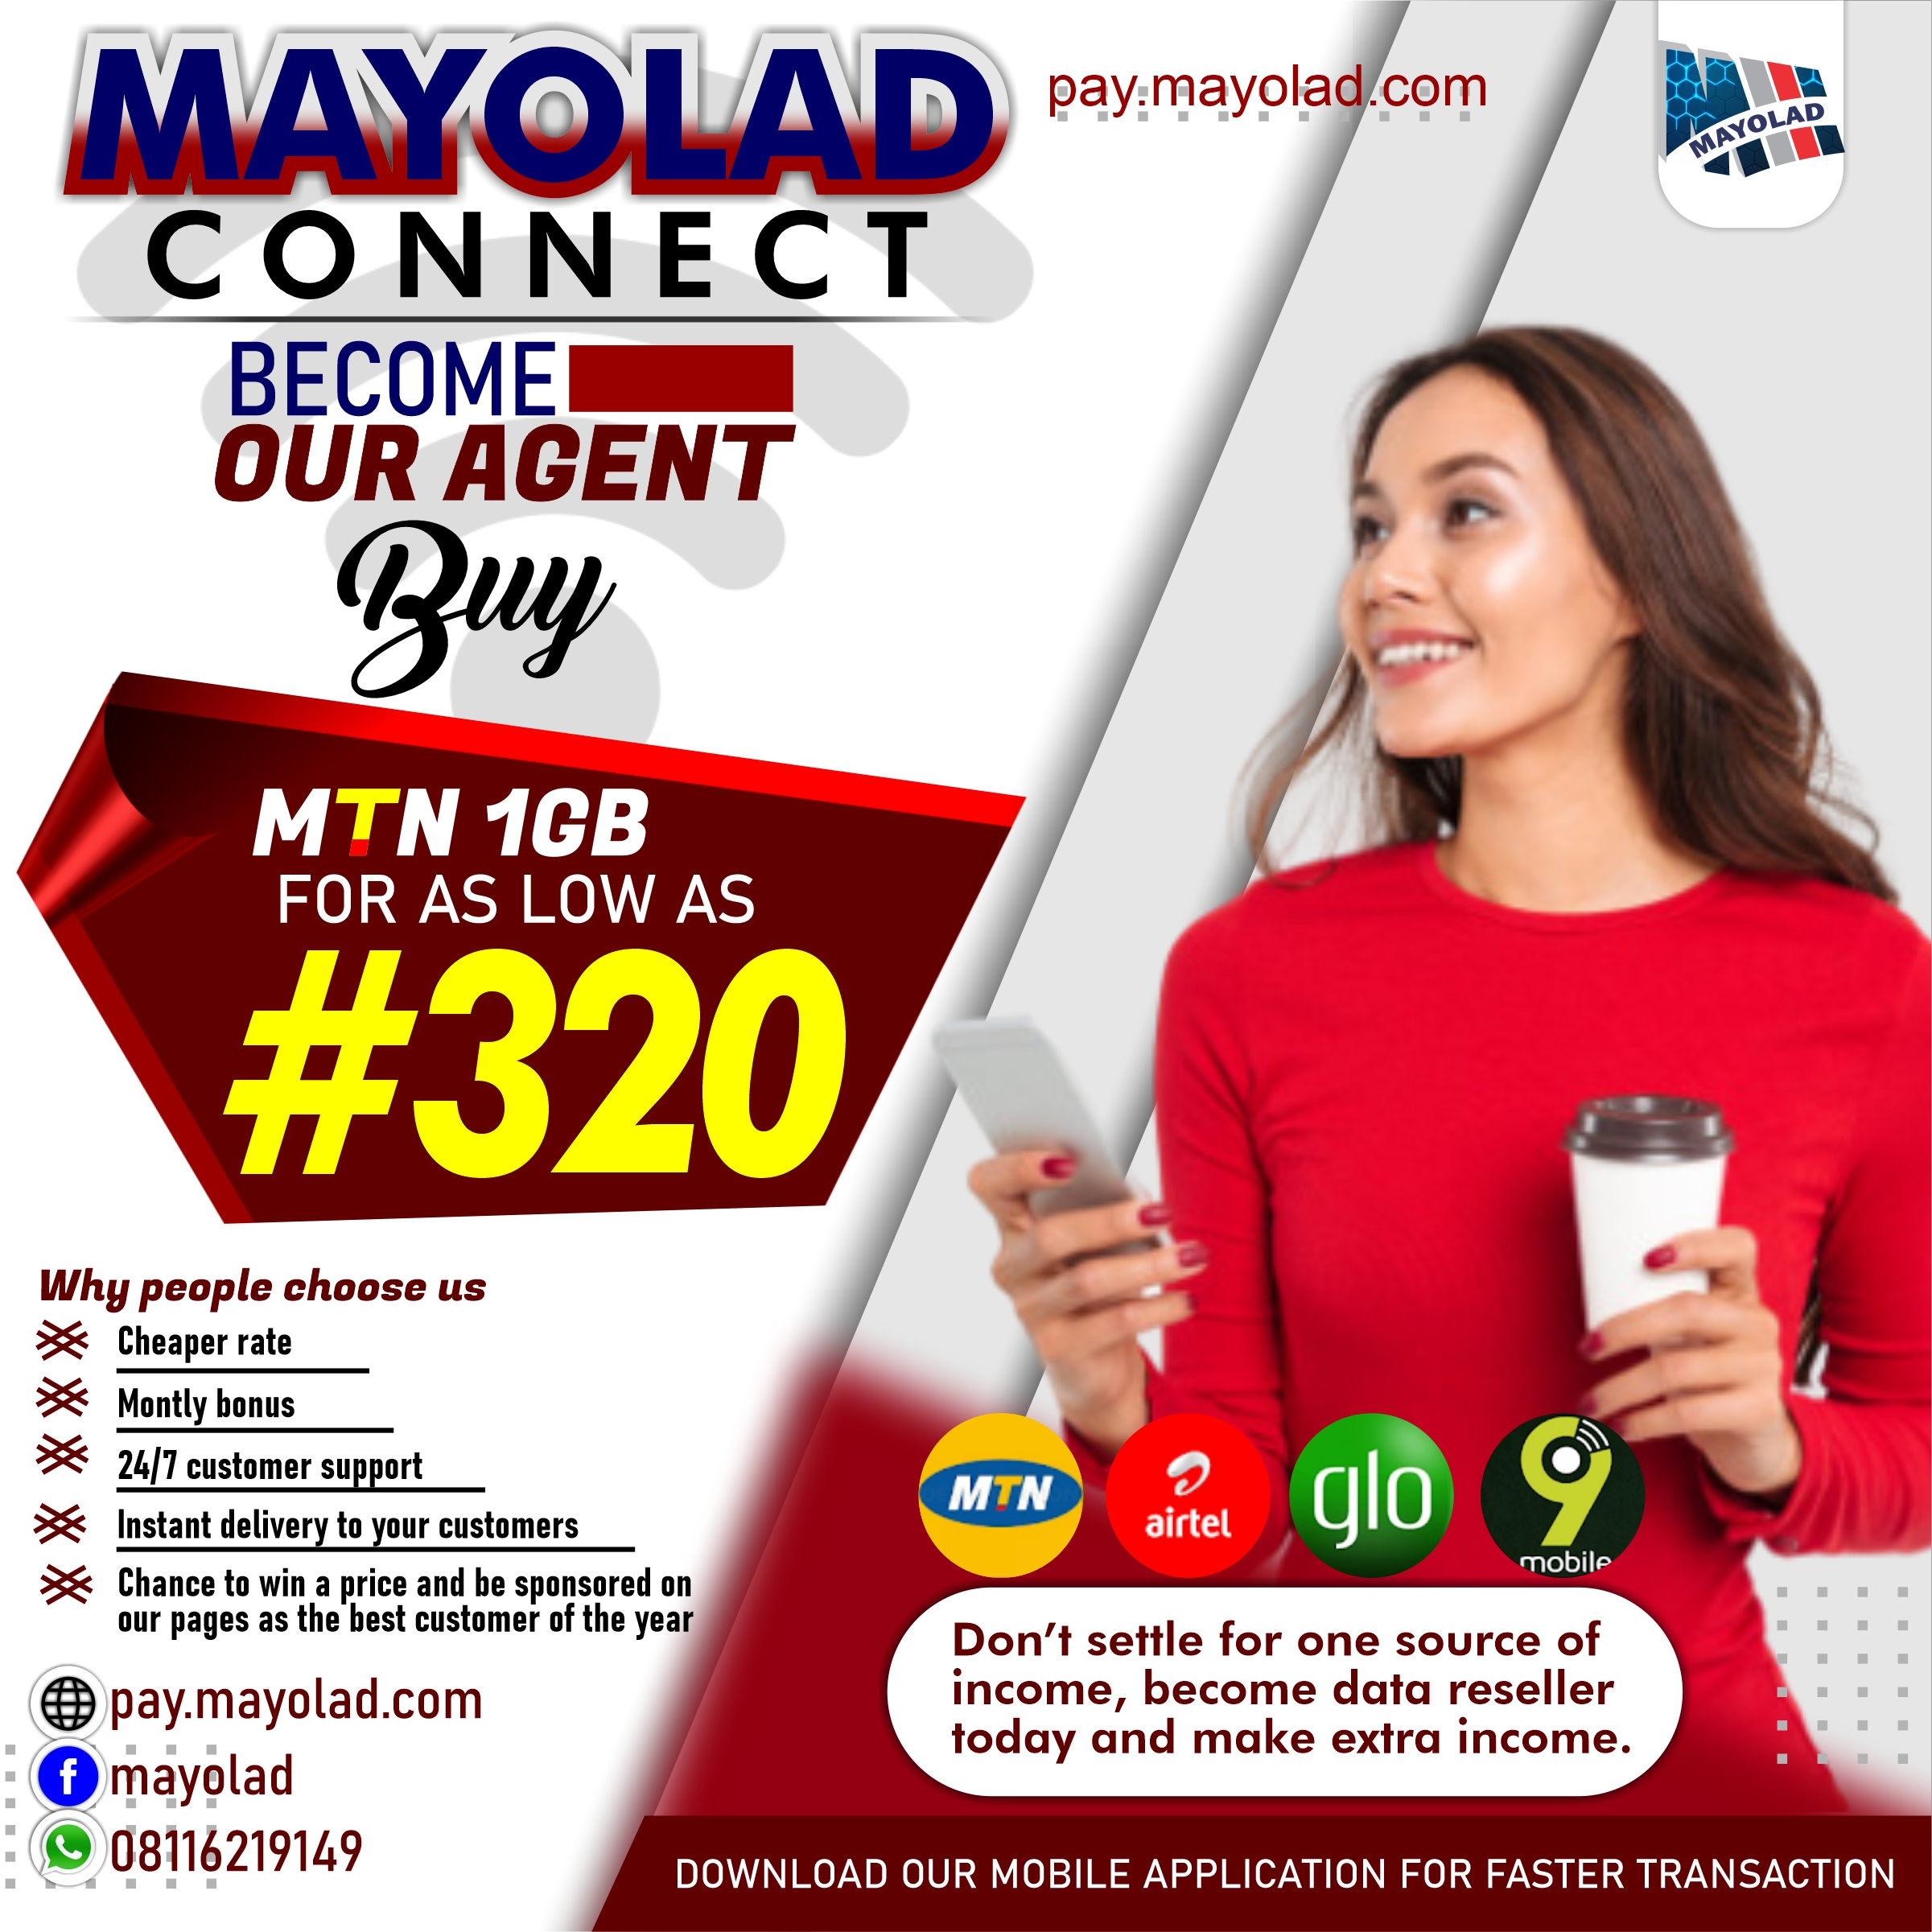 MAYOLAD CONNECT